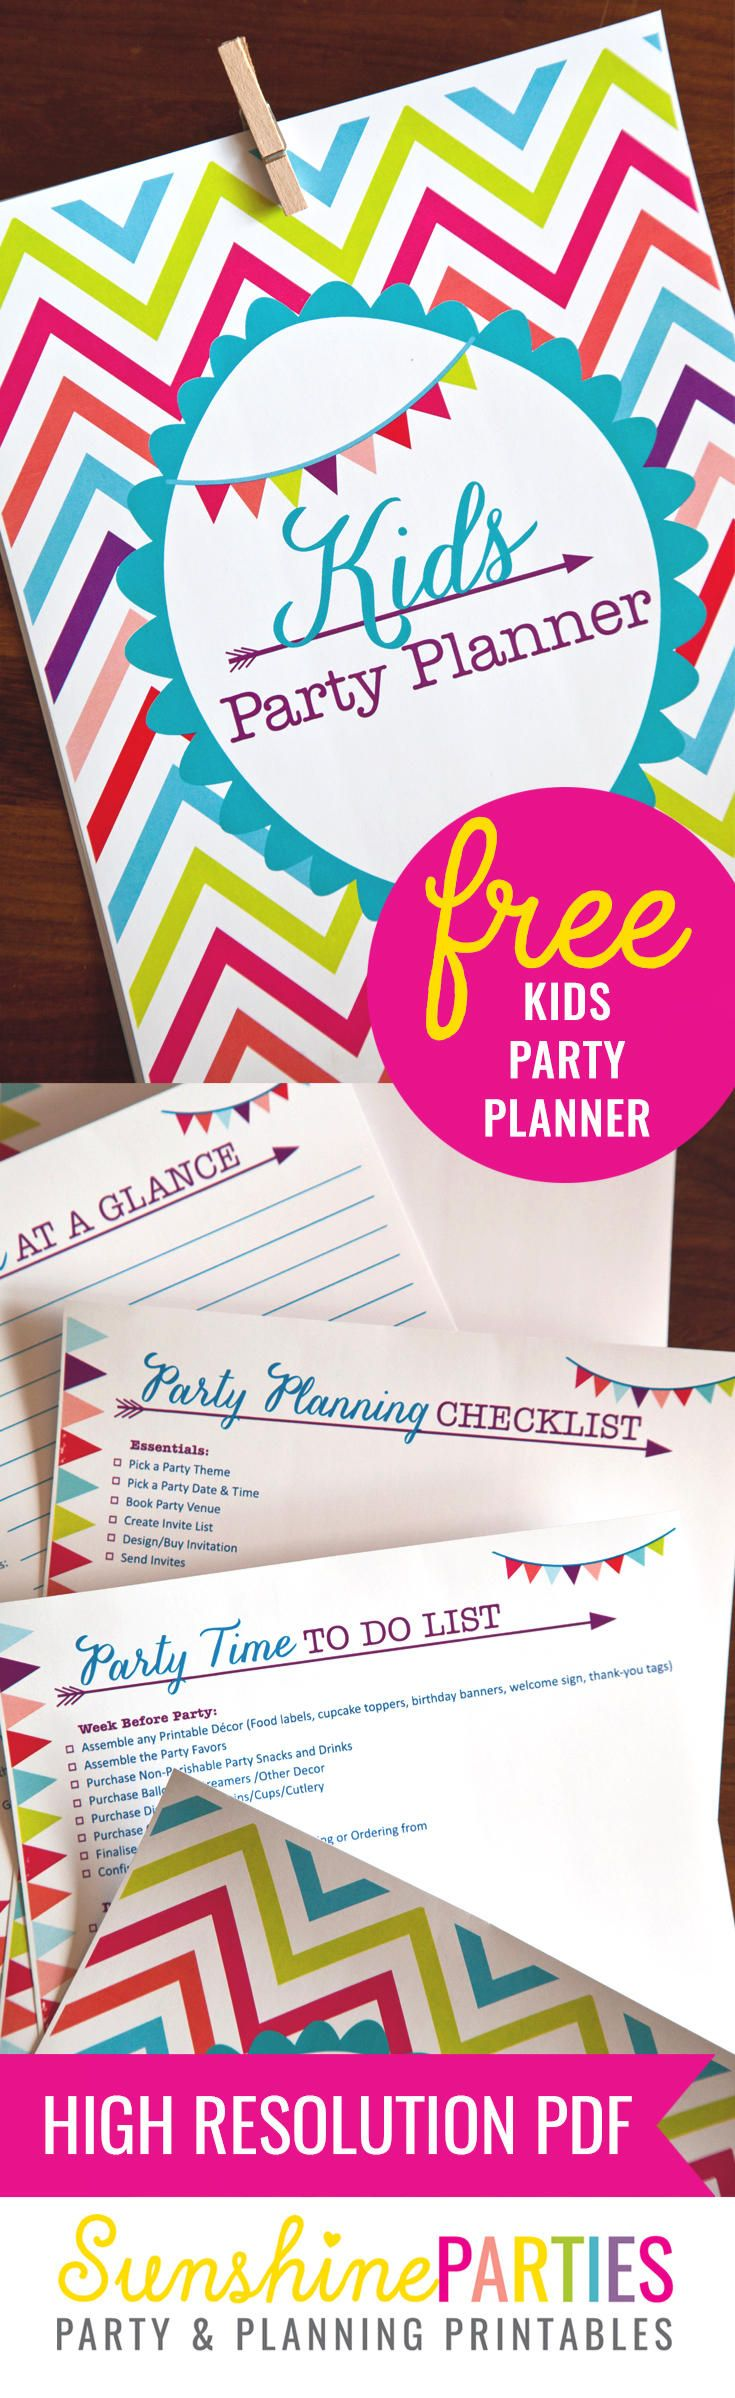 FREE Kids Party Planner - download this detailed party planner from Sunshine Parties for FREE. With checklists, advice and loads more, it will make you the party planner of the year!